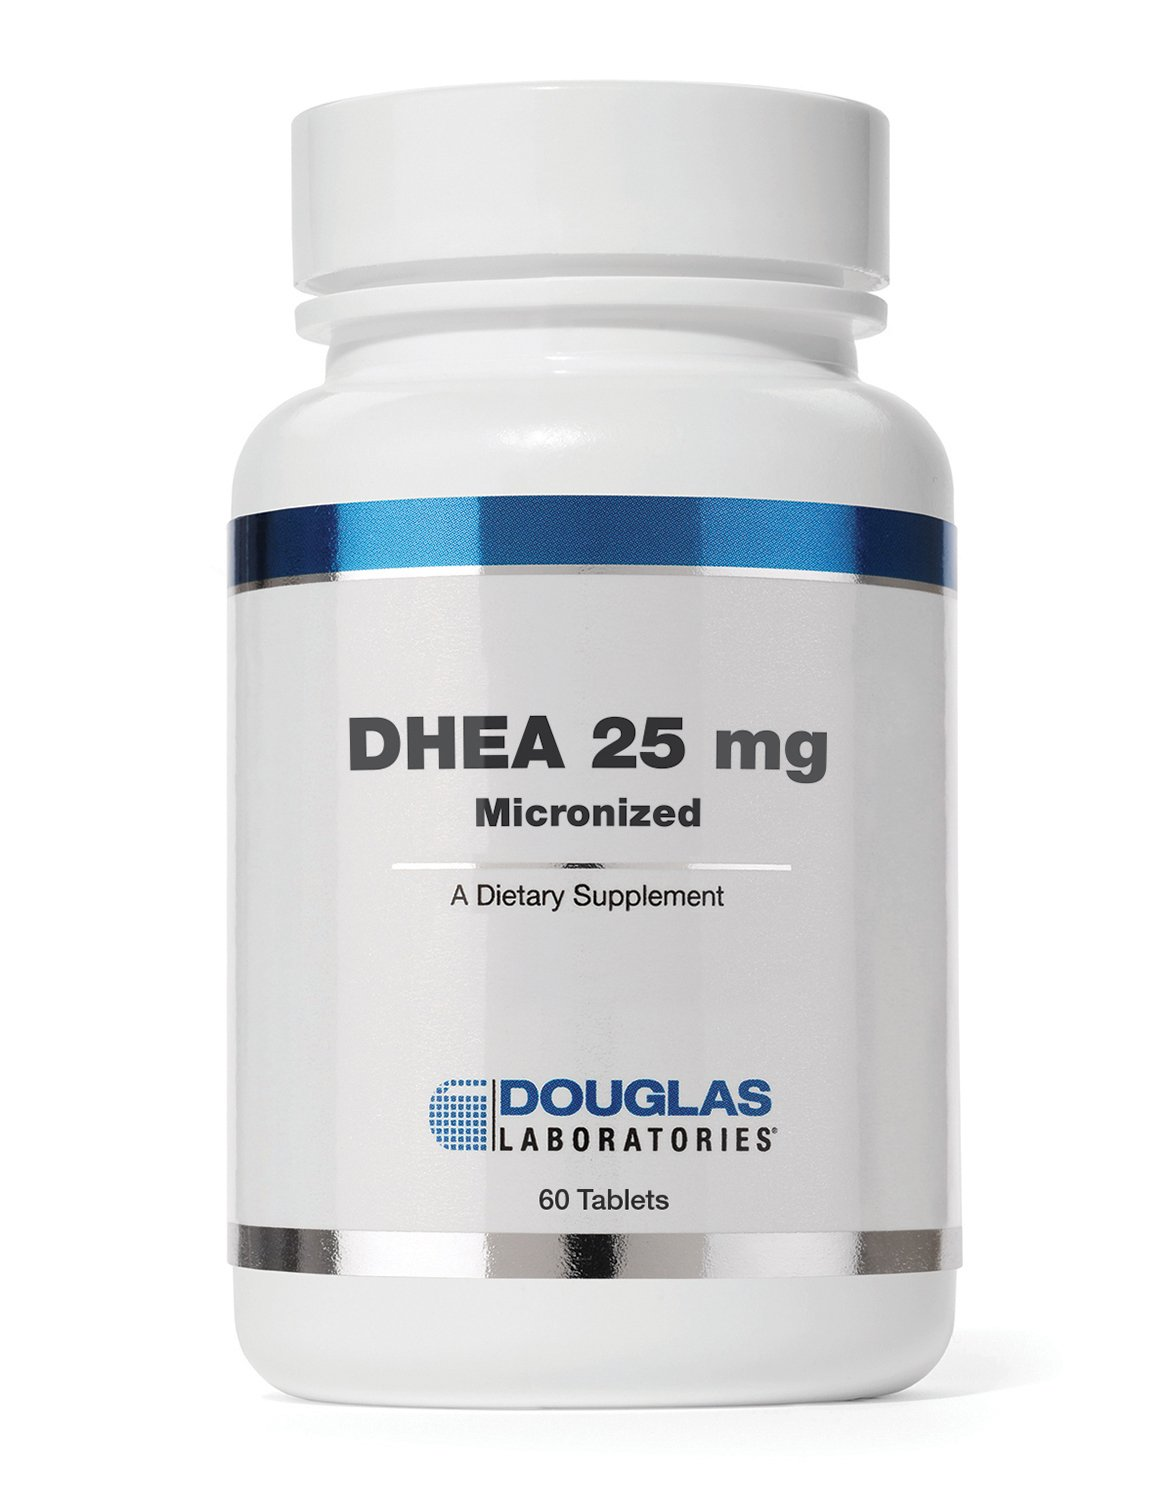 Douglas Laboratories - DHEA 25 mg - Micronized to Support Immunity, Brain, Bones, Metabolism and Lean Body Mass *- 120 Tablets